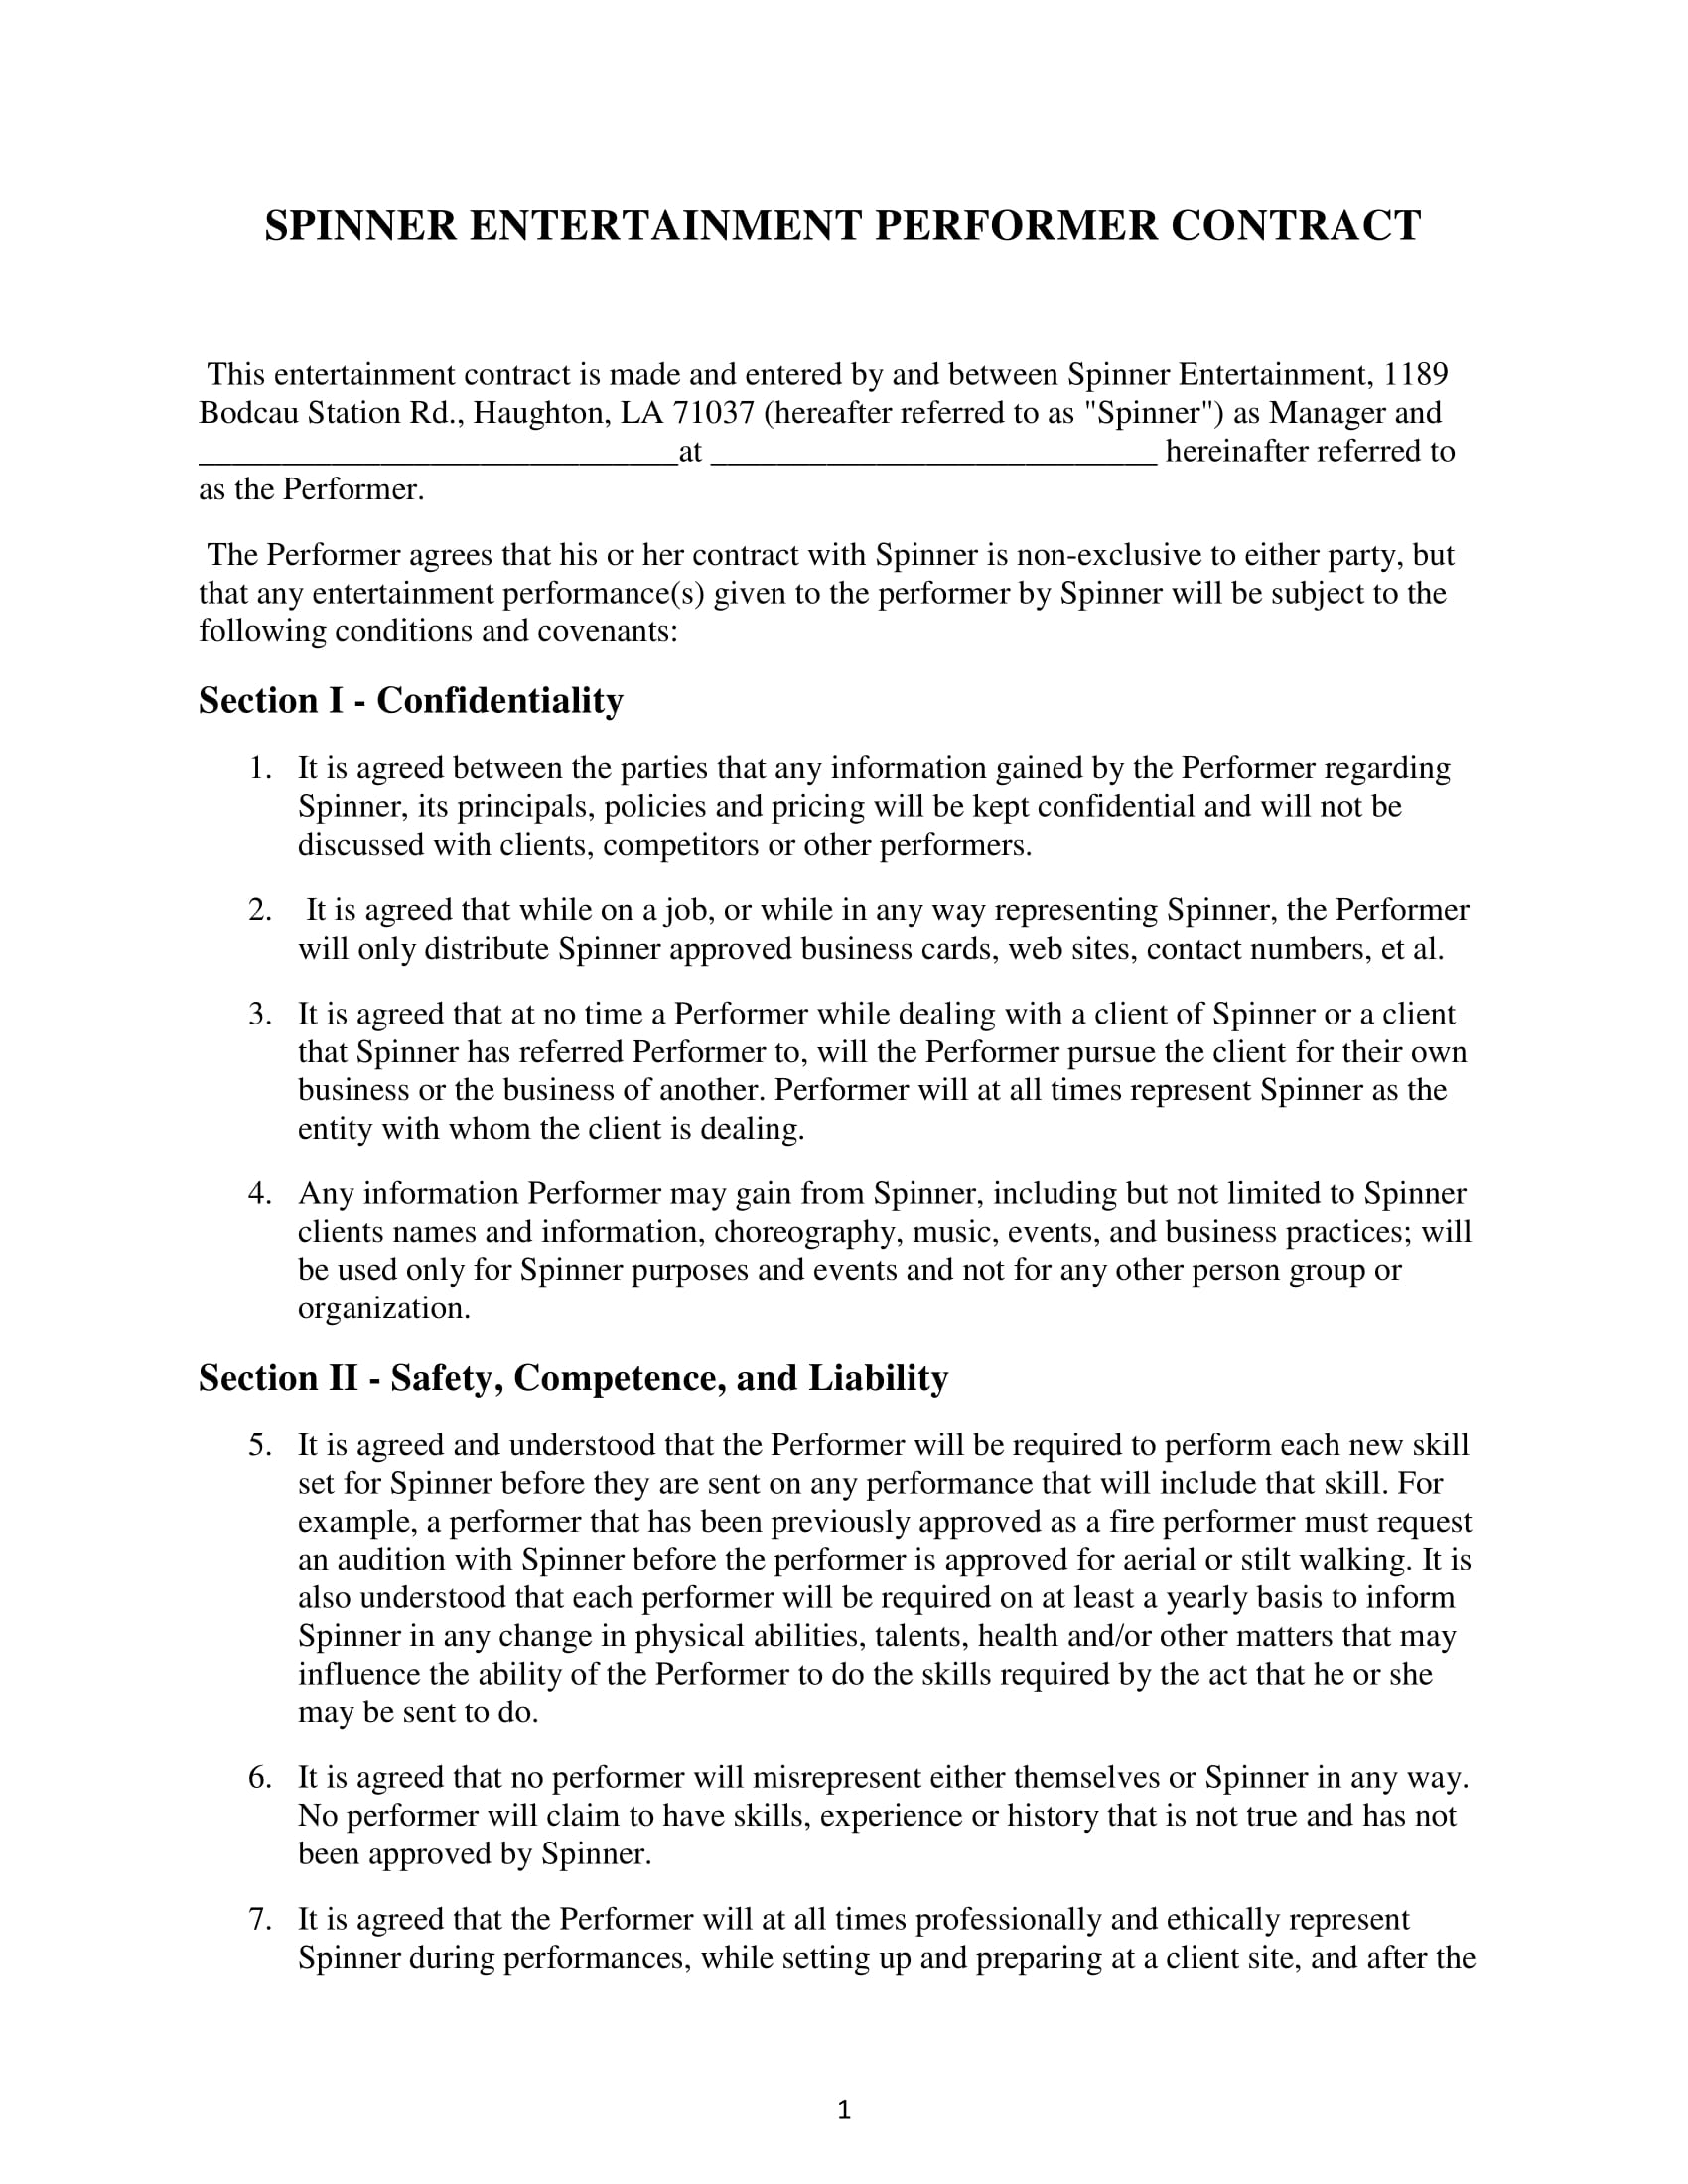 entertainment performer contract form 1